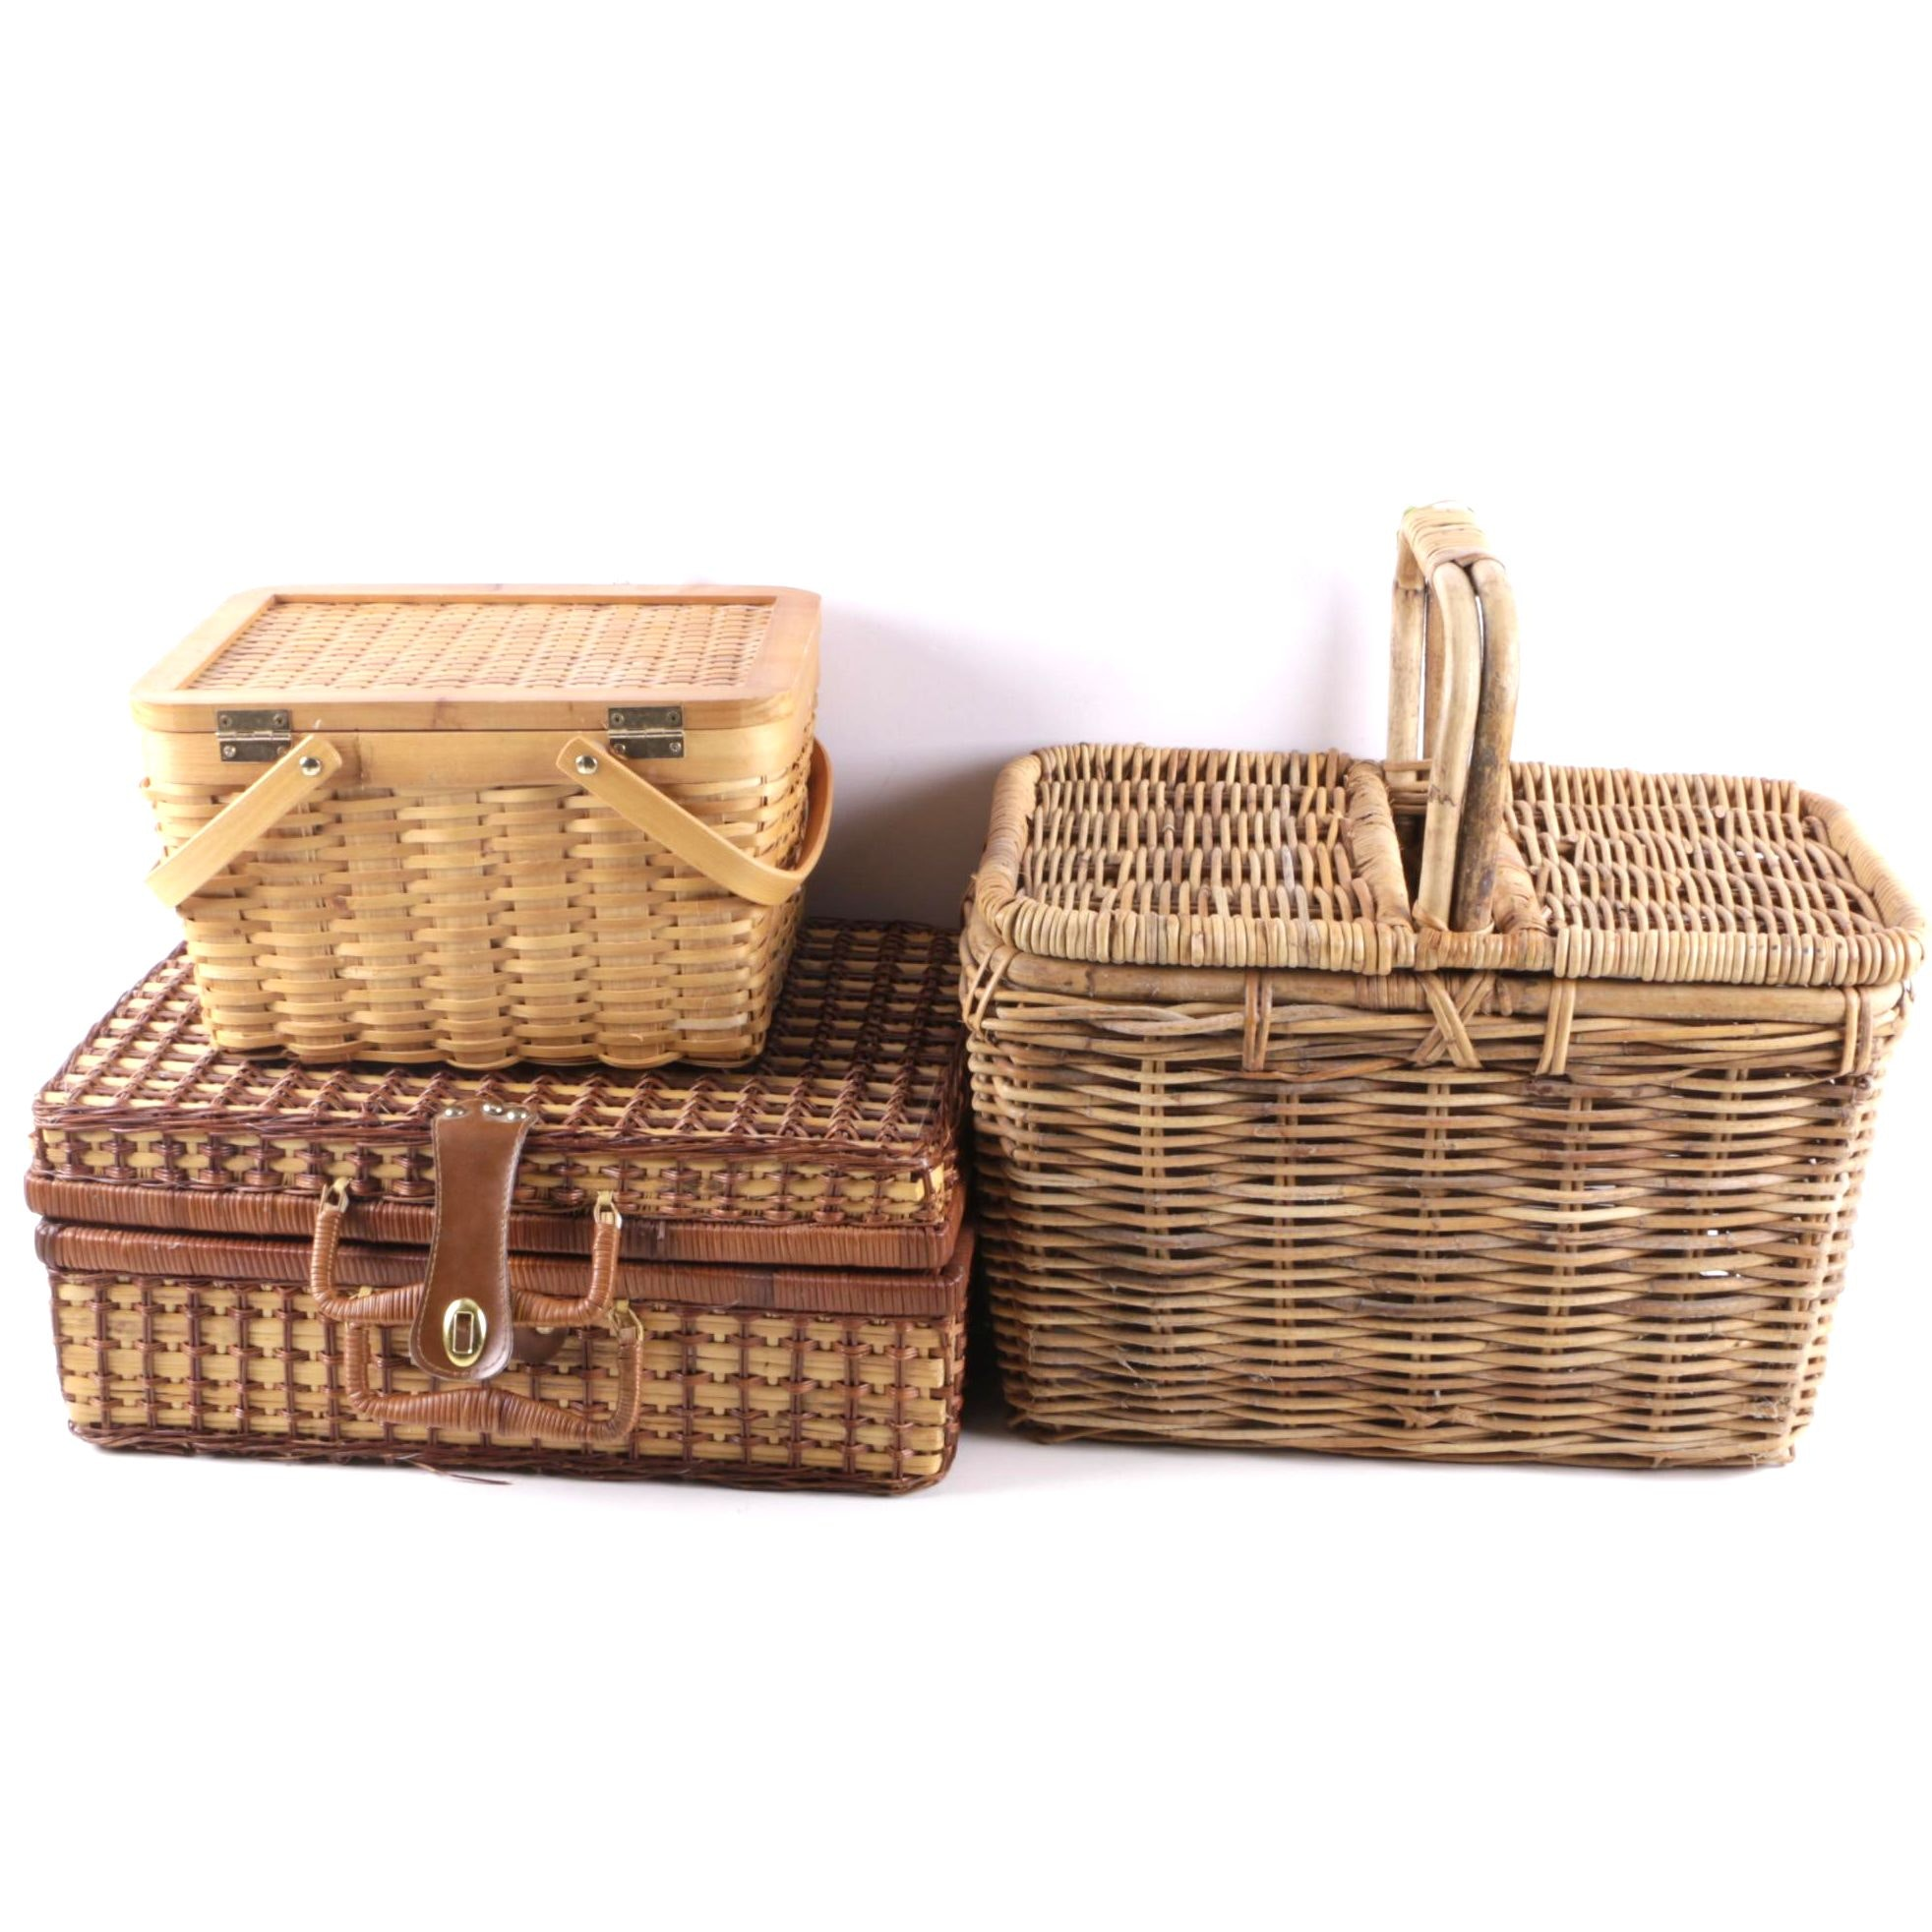 Three Wooden Wicker Picnic Baskets